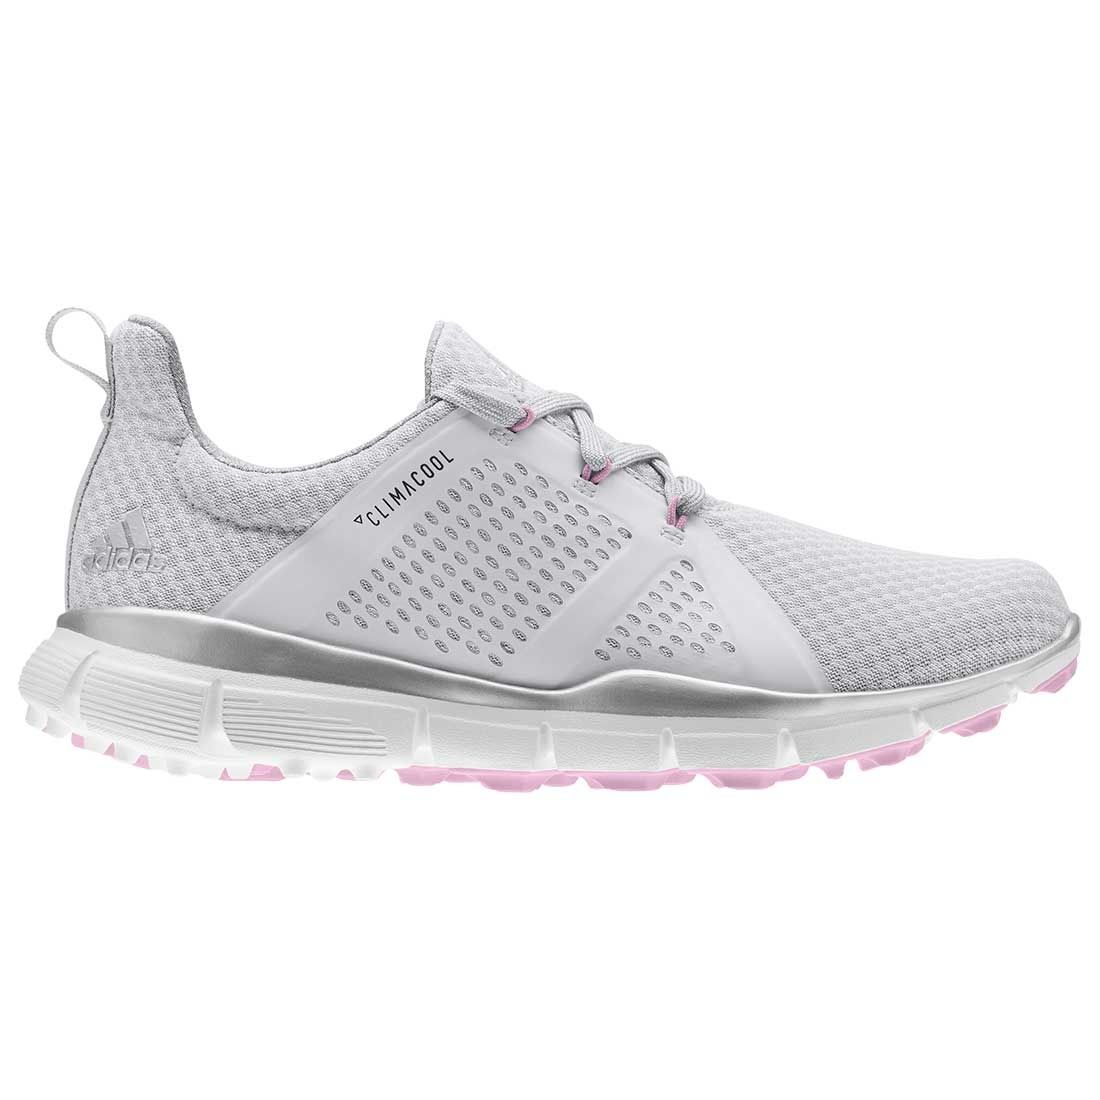 Buy Adidas Women's ClimaCool Cage Golf Shoes Grey/Silver/Pink ...